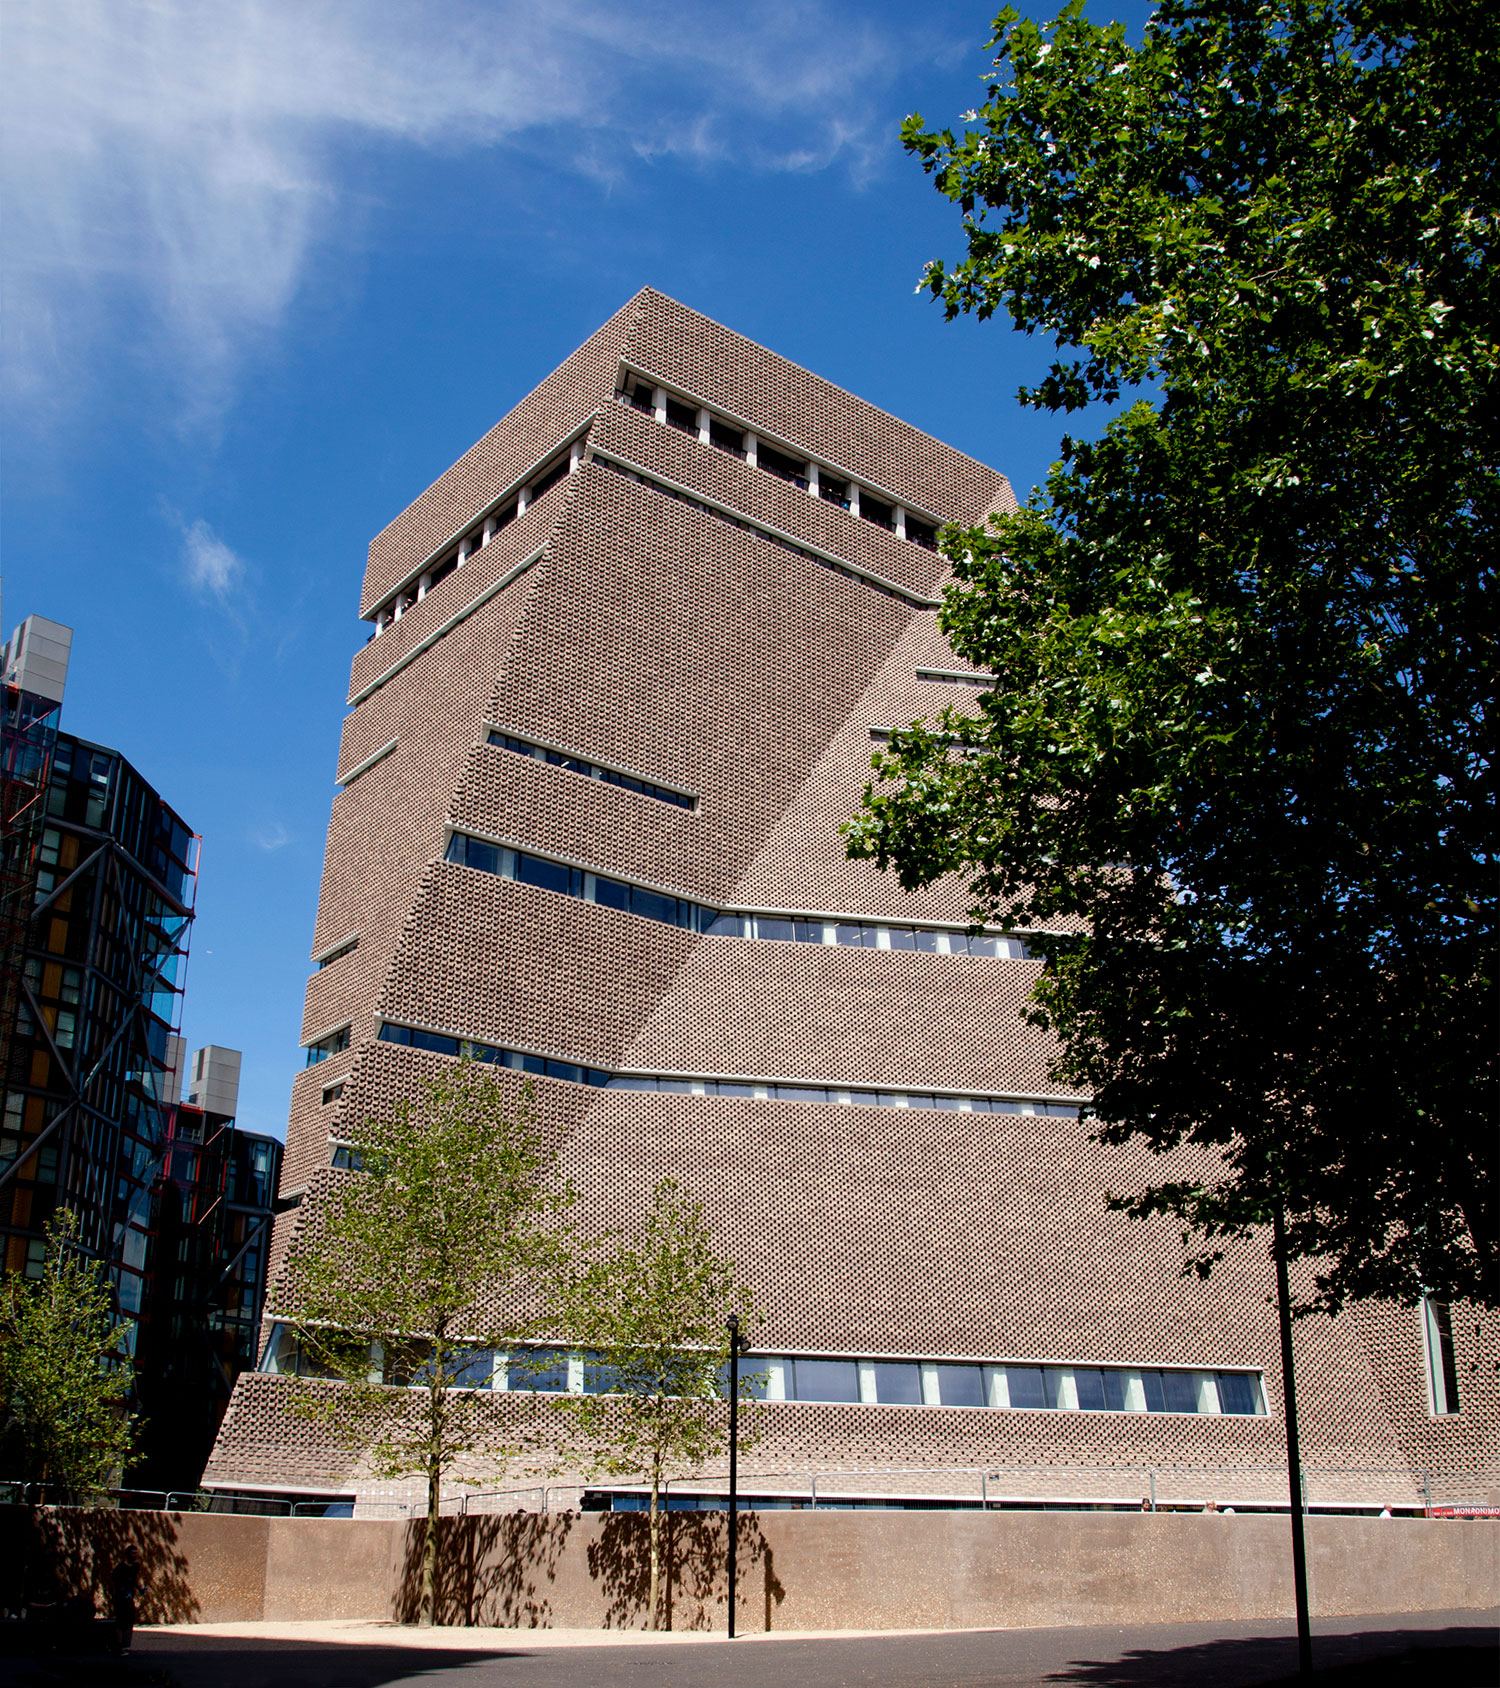 Tate-Modern-2-Elevation.jpg